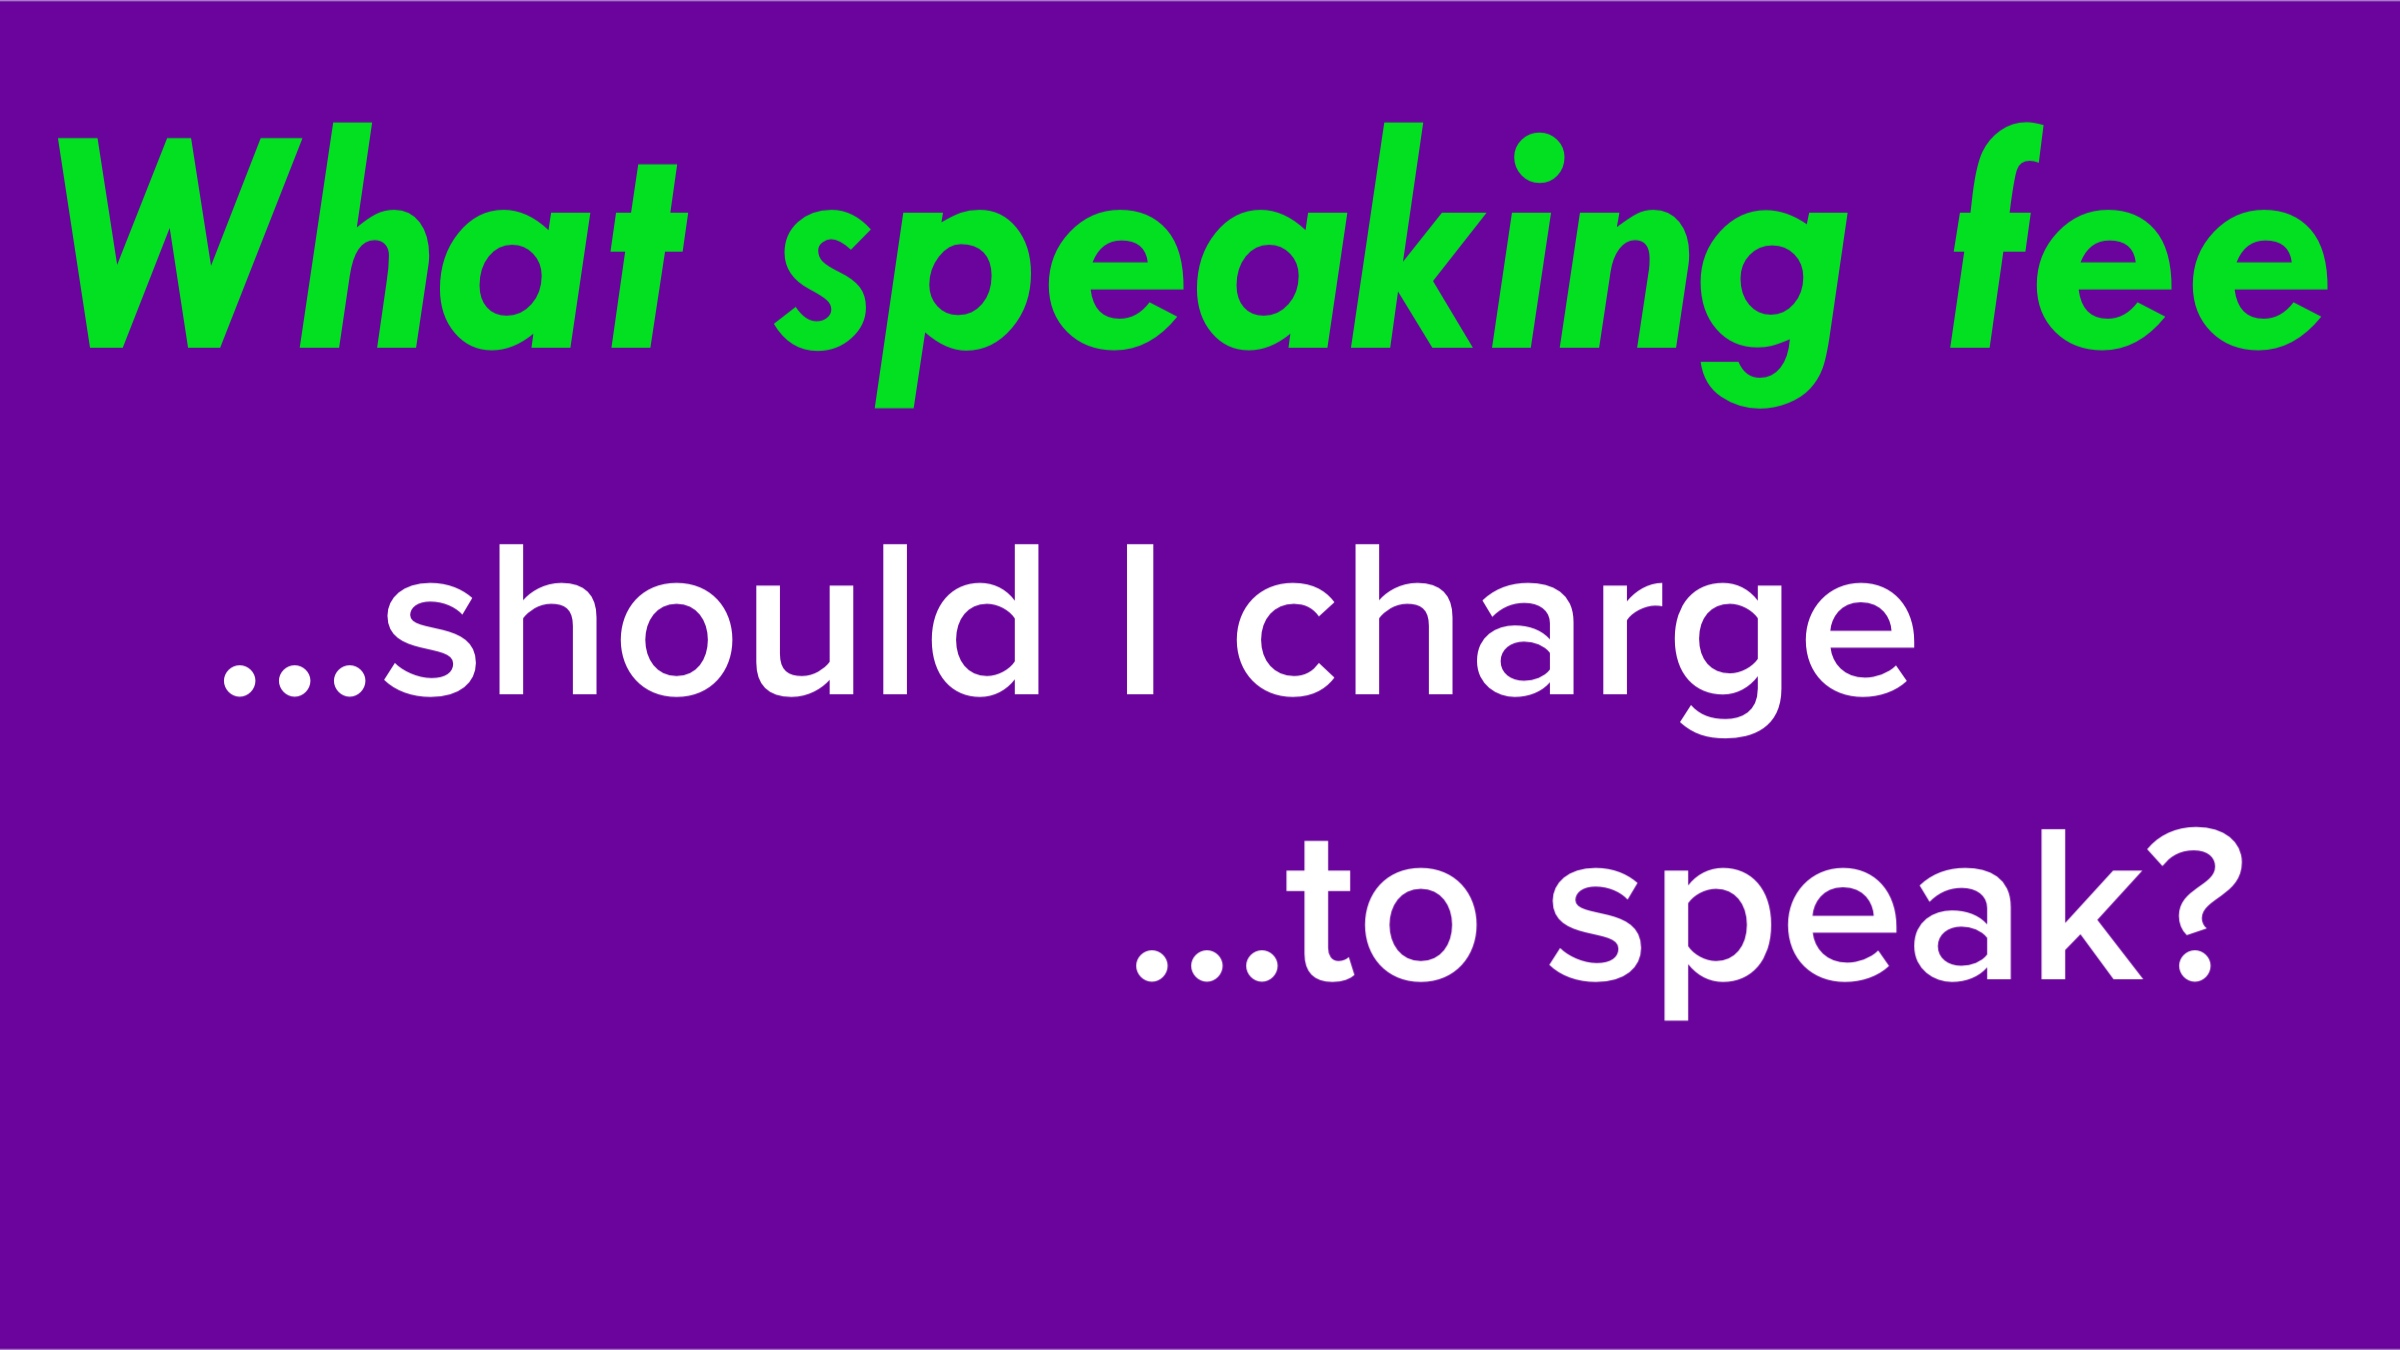 What Should Speakers Charge For Their Speaking Fee?